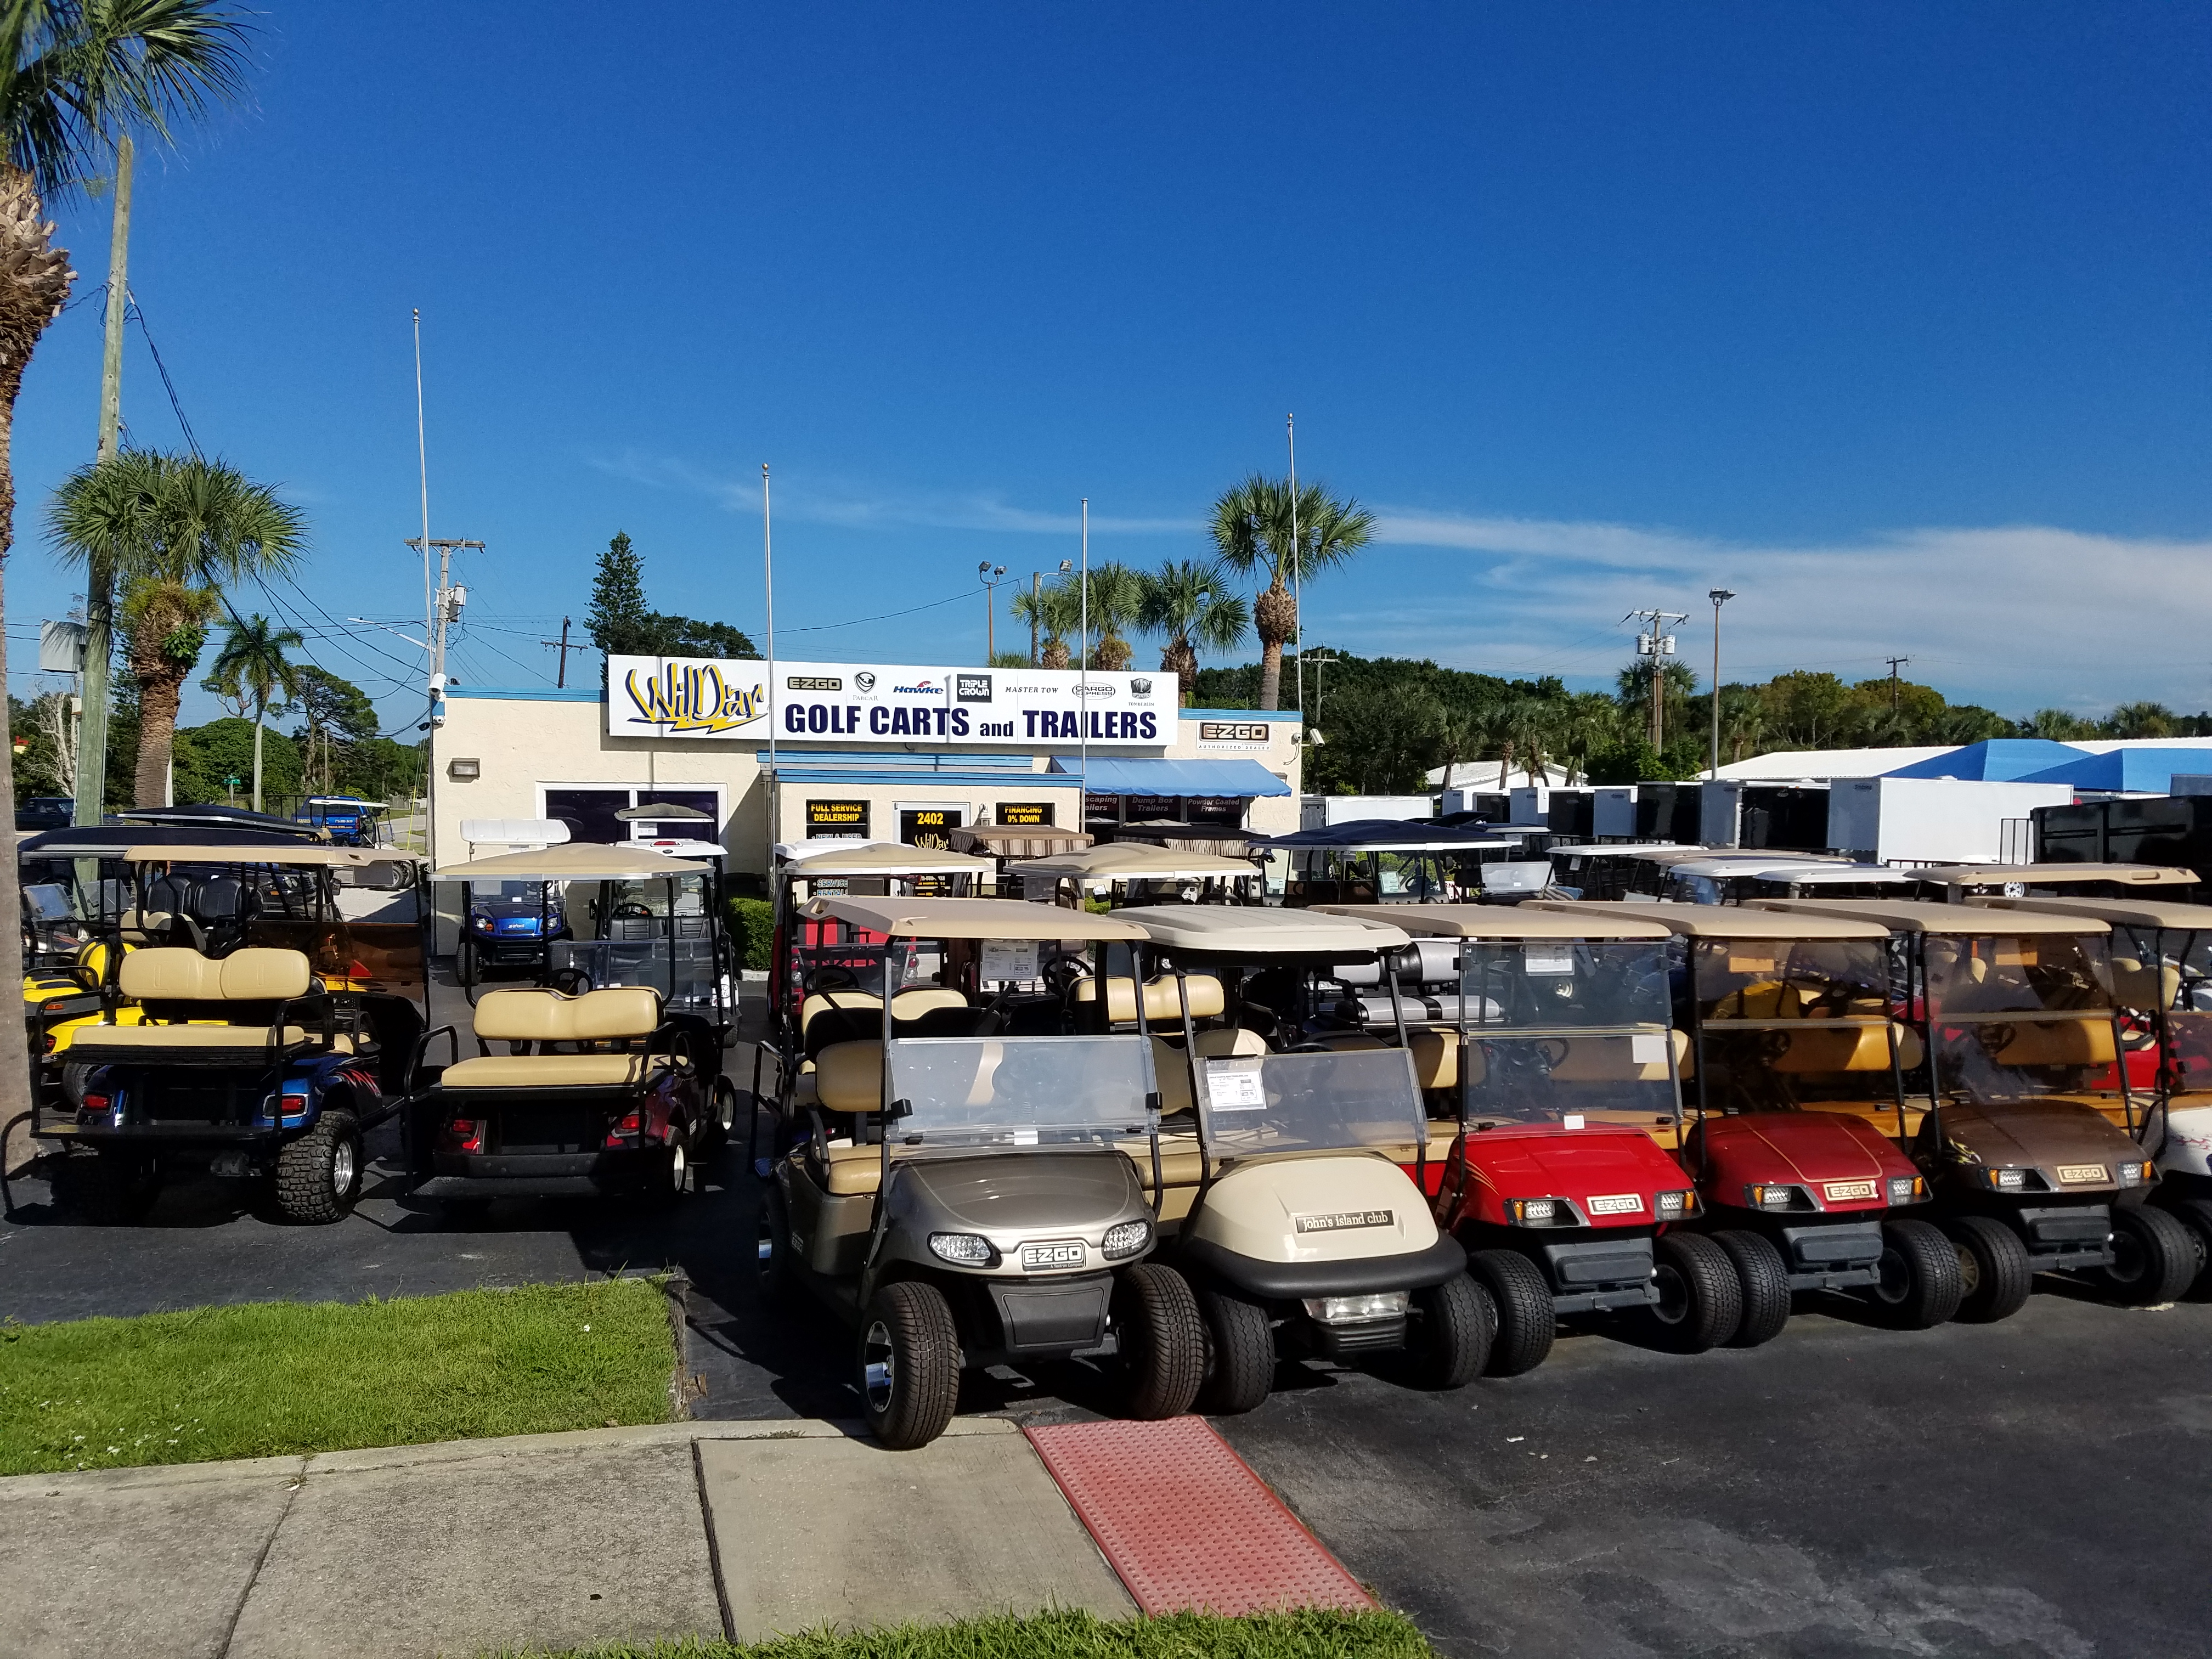 Wildar Golf Carts and Trailers image 9